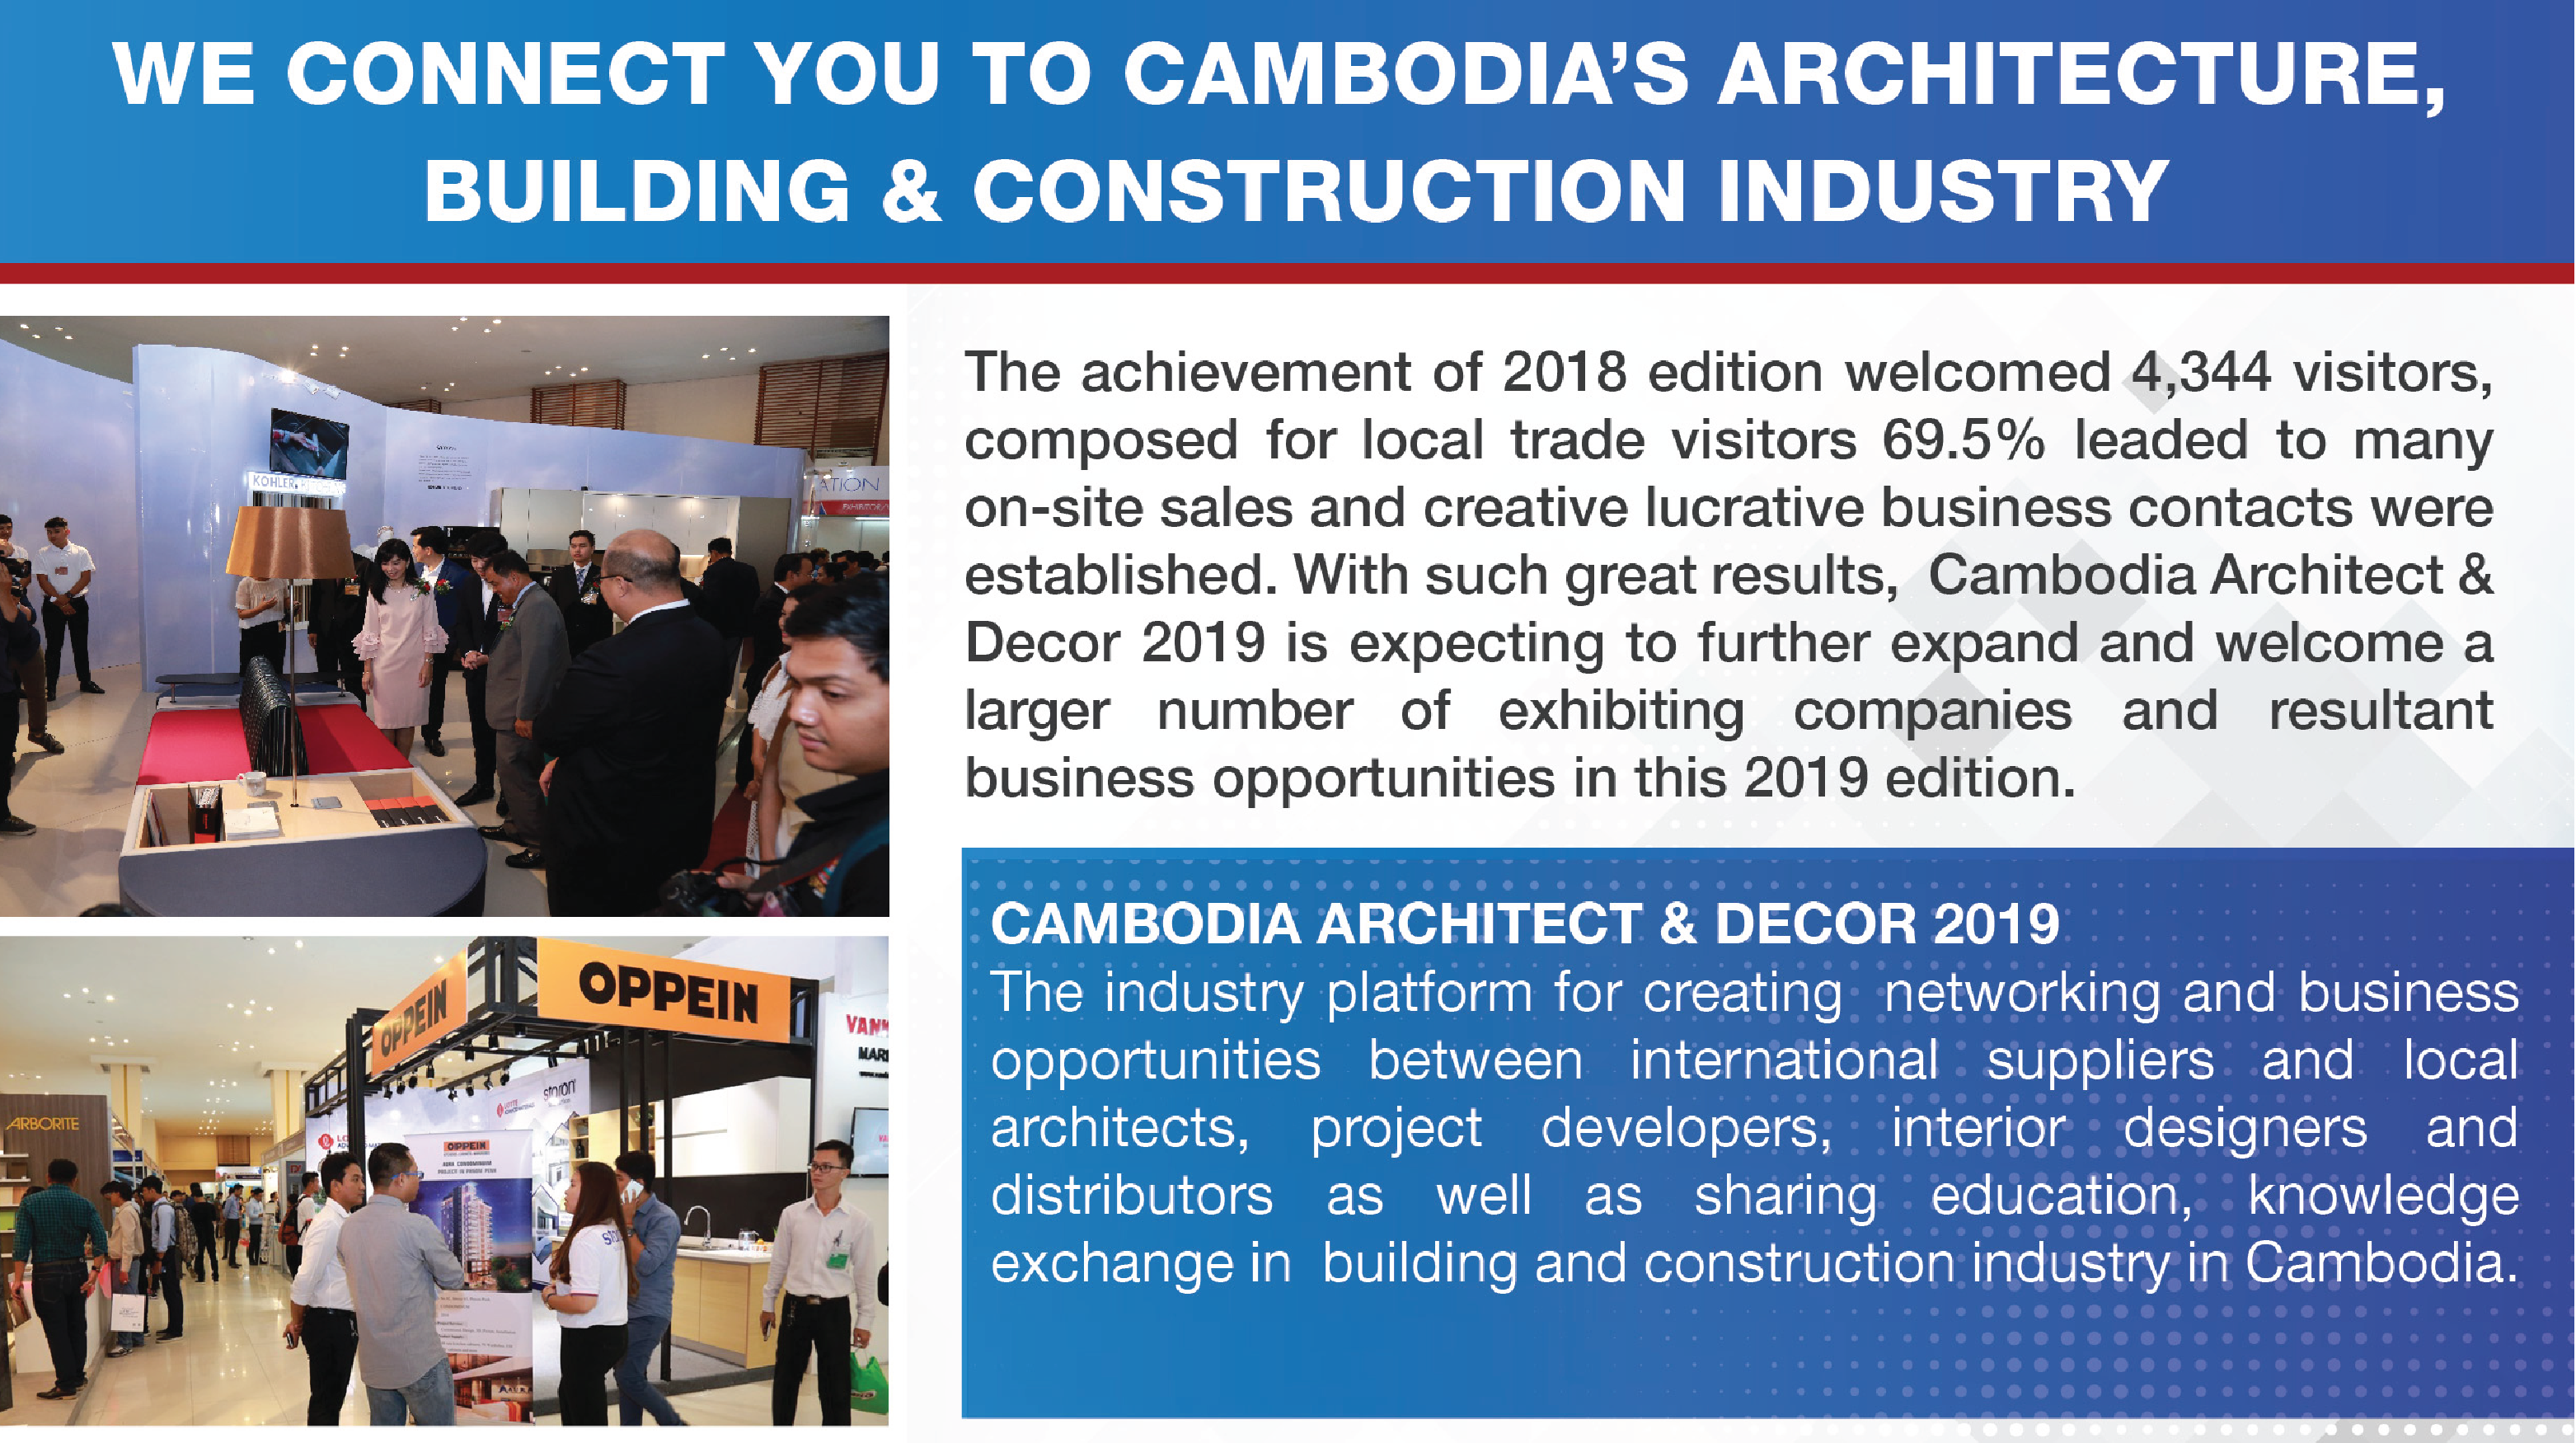 We connect you to Cambodia's architecture, building and construction industry